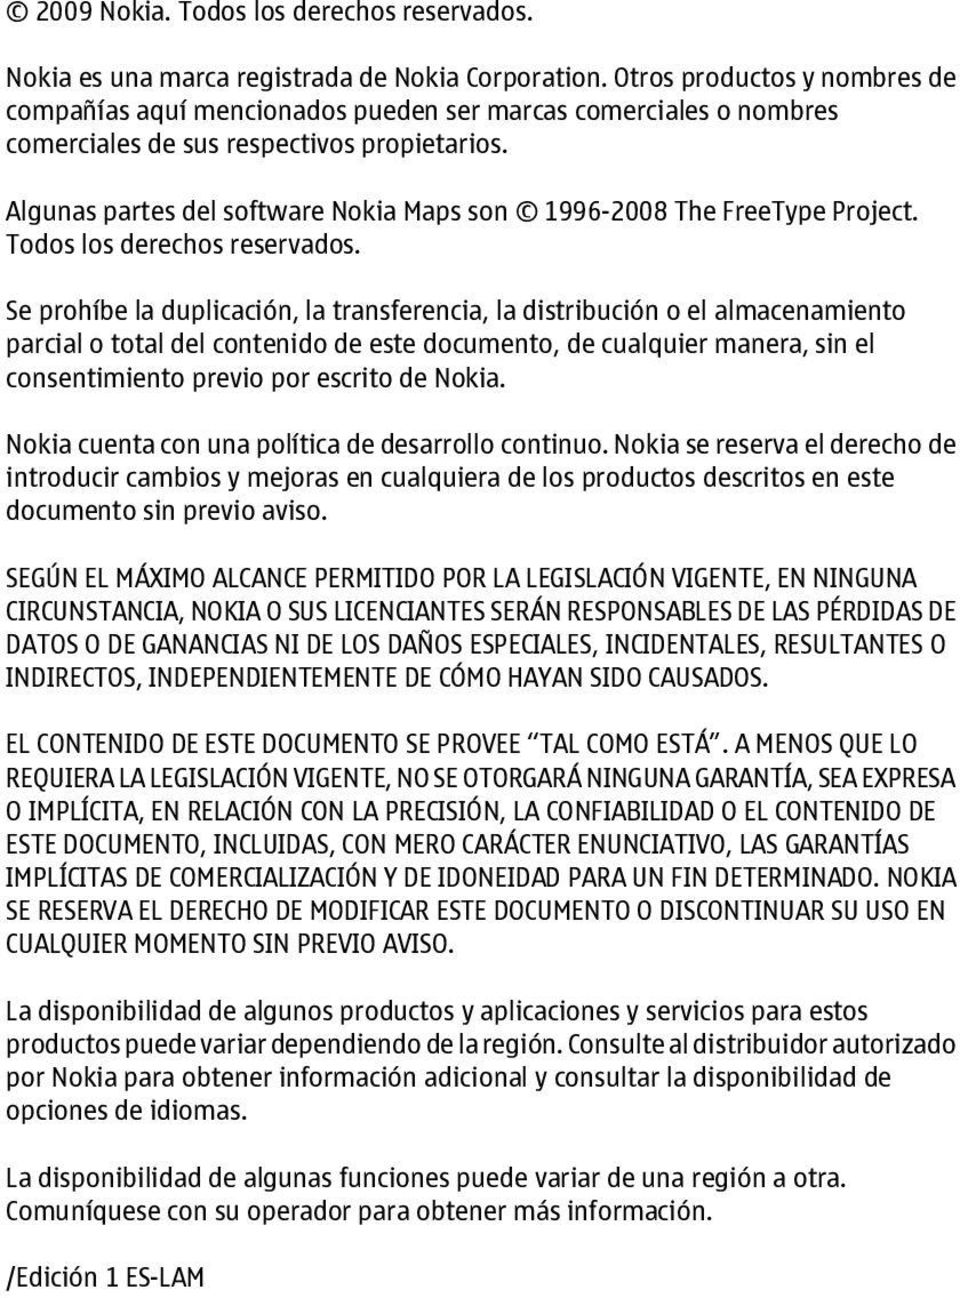 Algunas partes del software Nokia Maps son 1996-2008 The FreeType Project. Todos los derechos reservados.